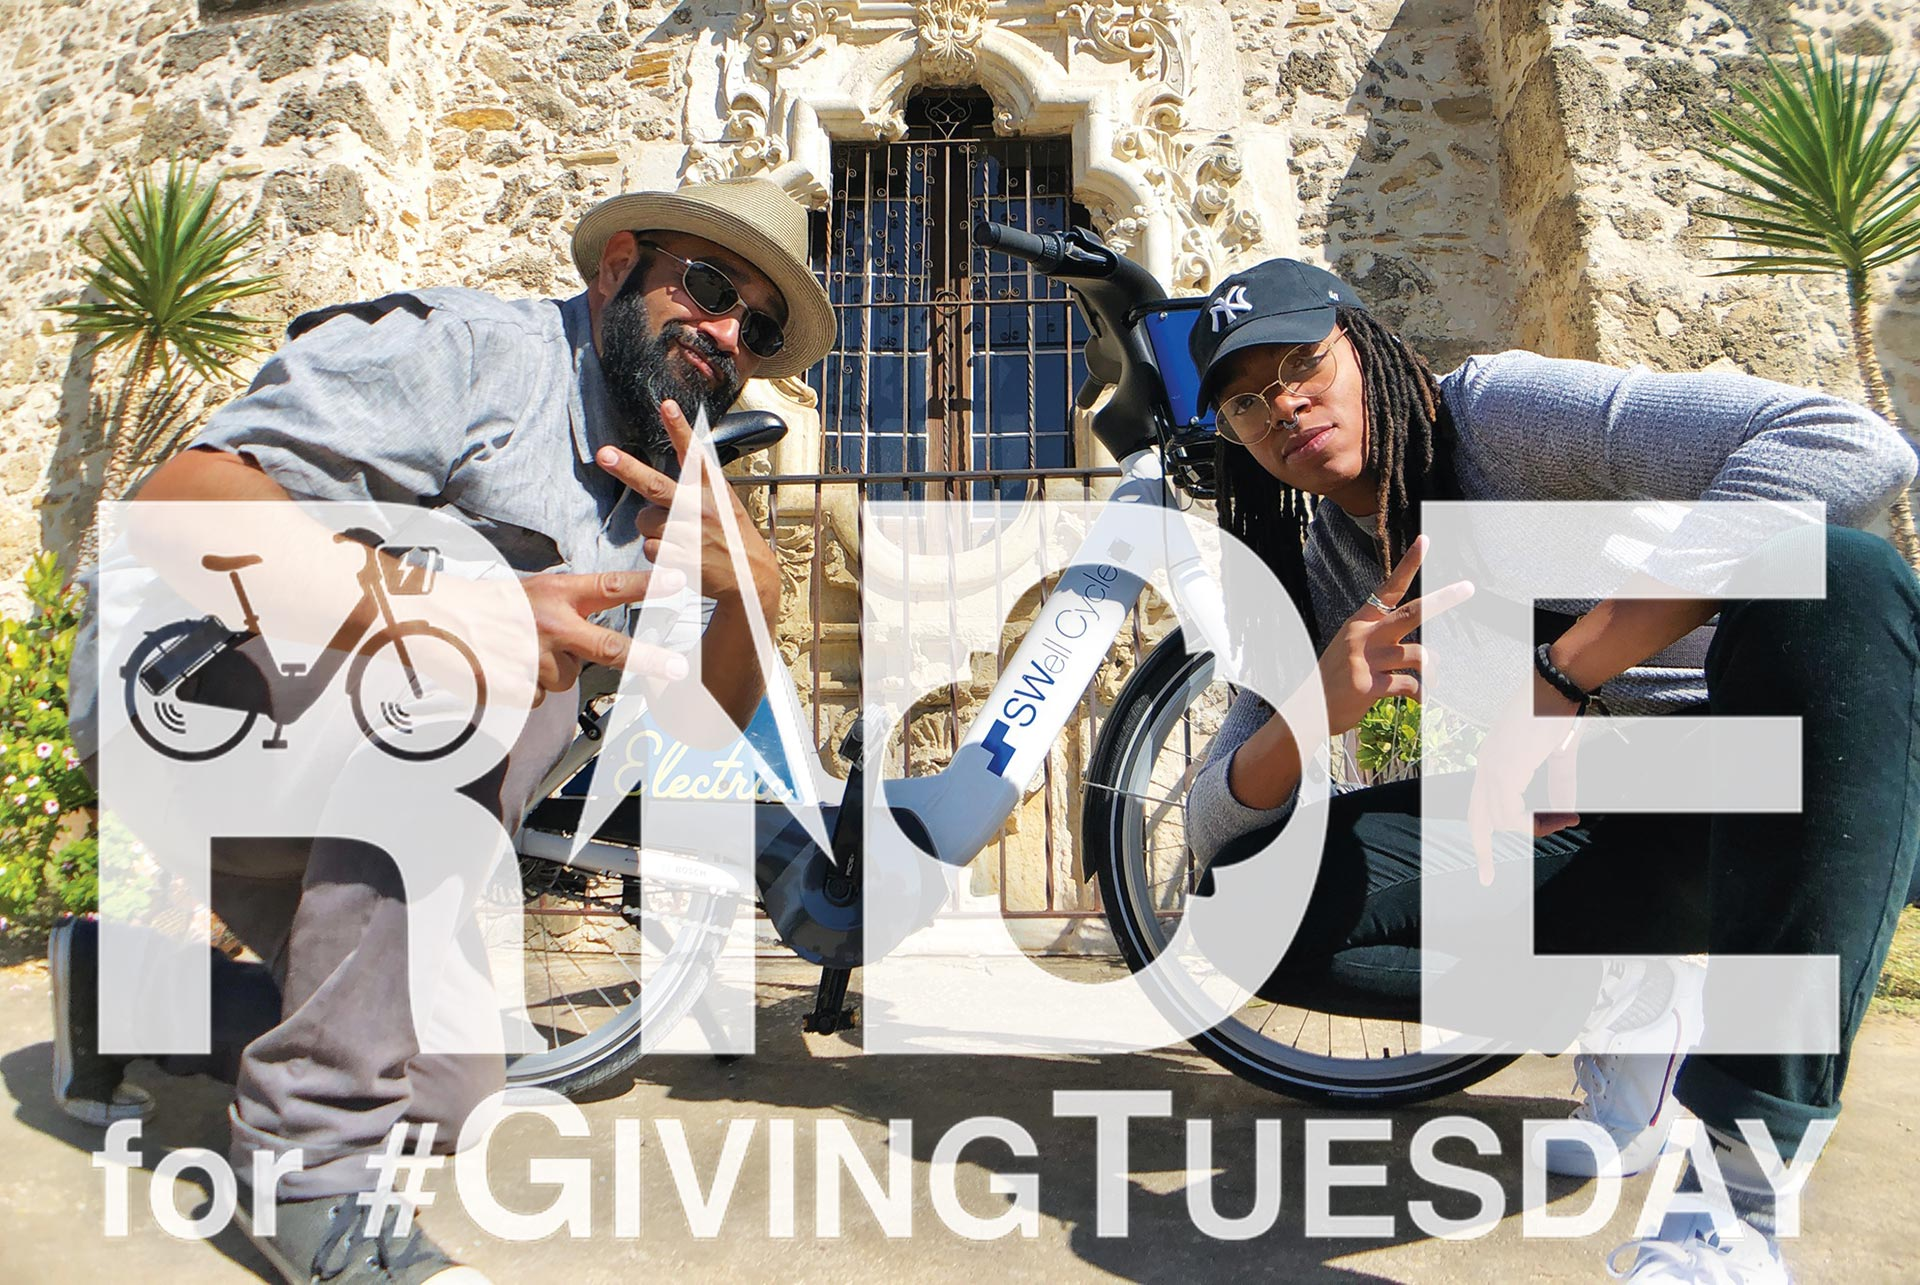 Ride for Giving Tuesday